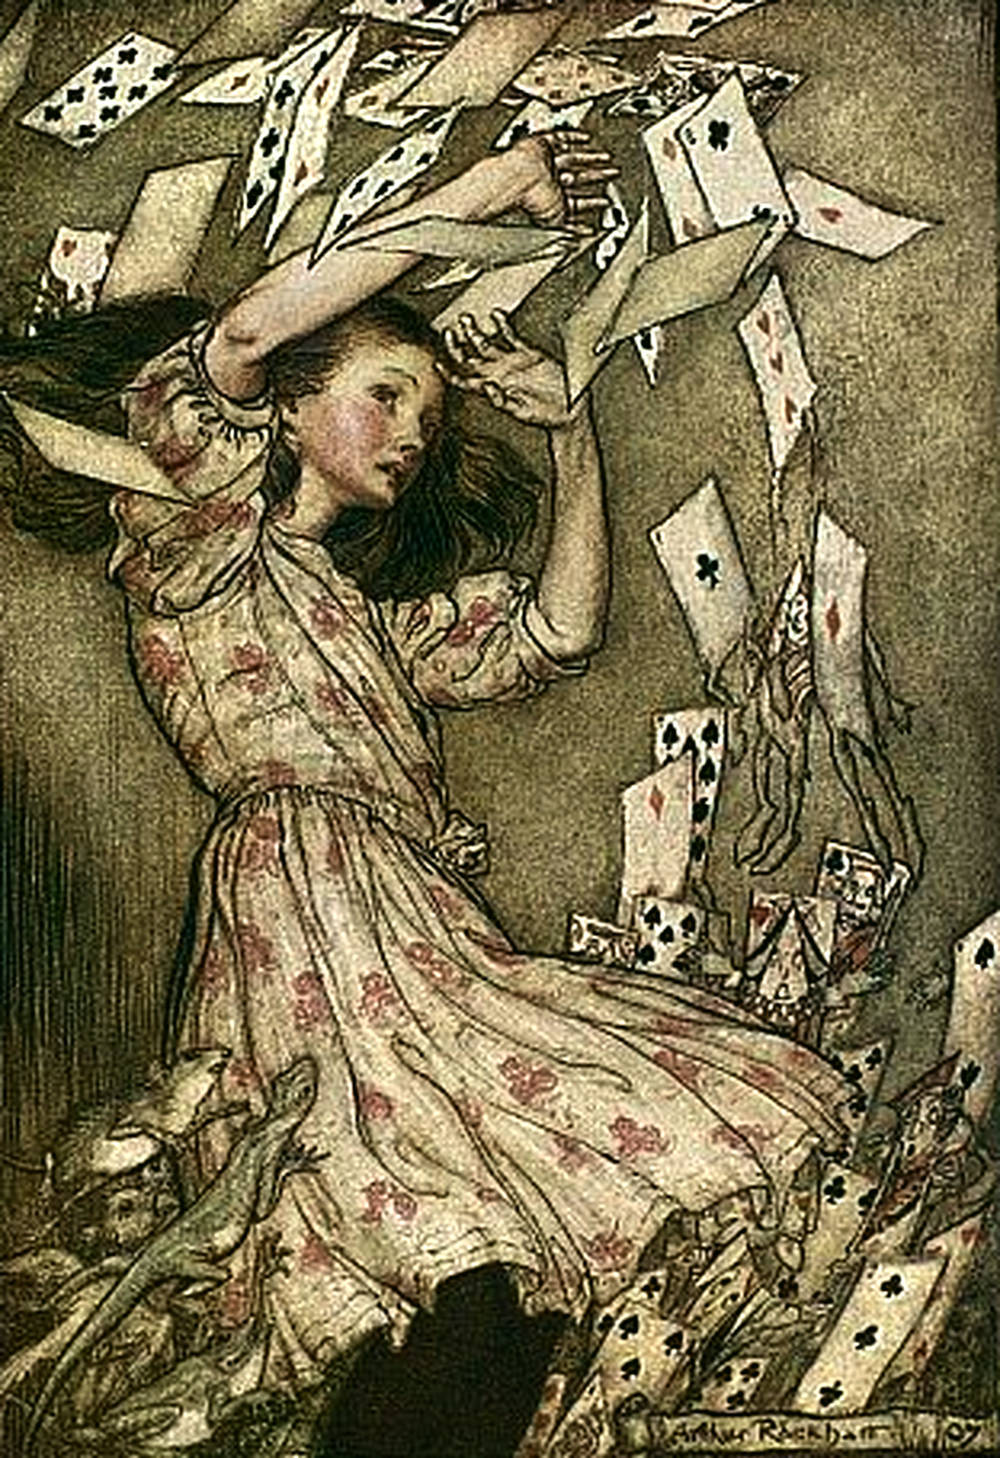 Cards Attack Alice Adventures in Wonderland